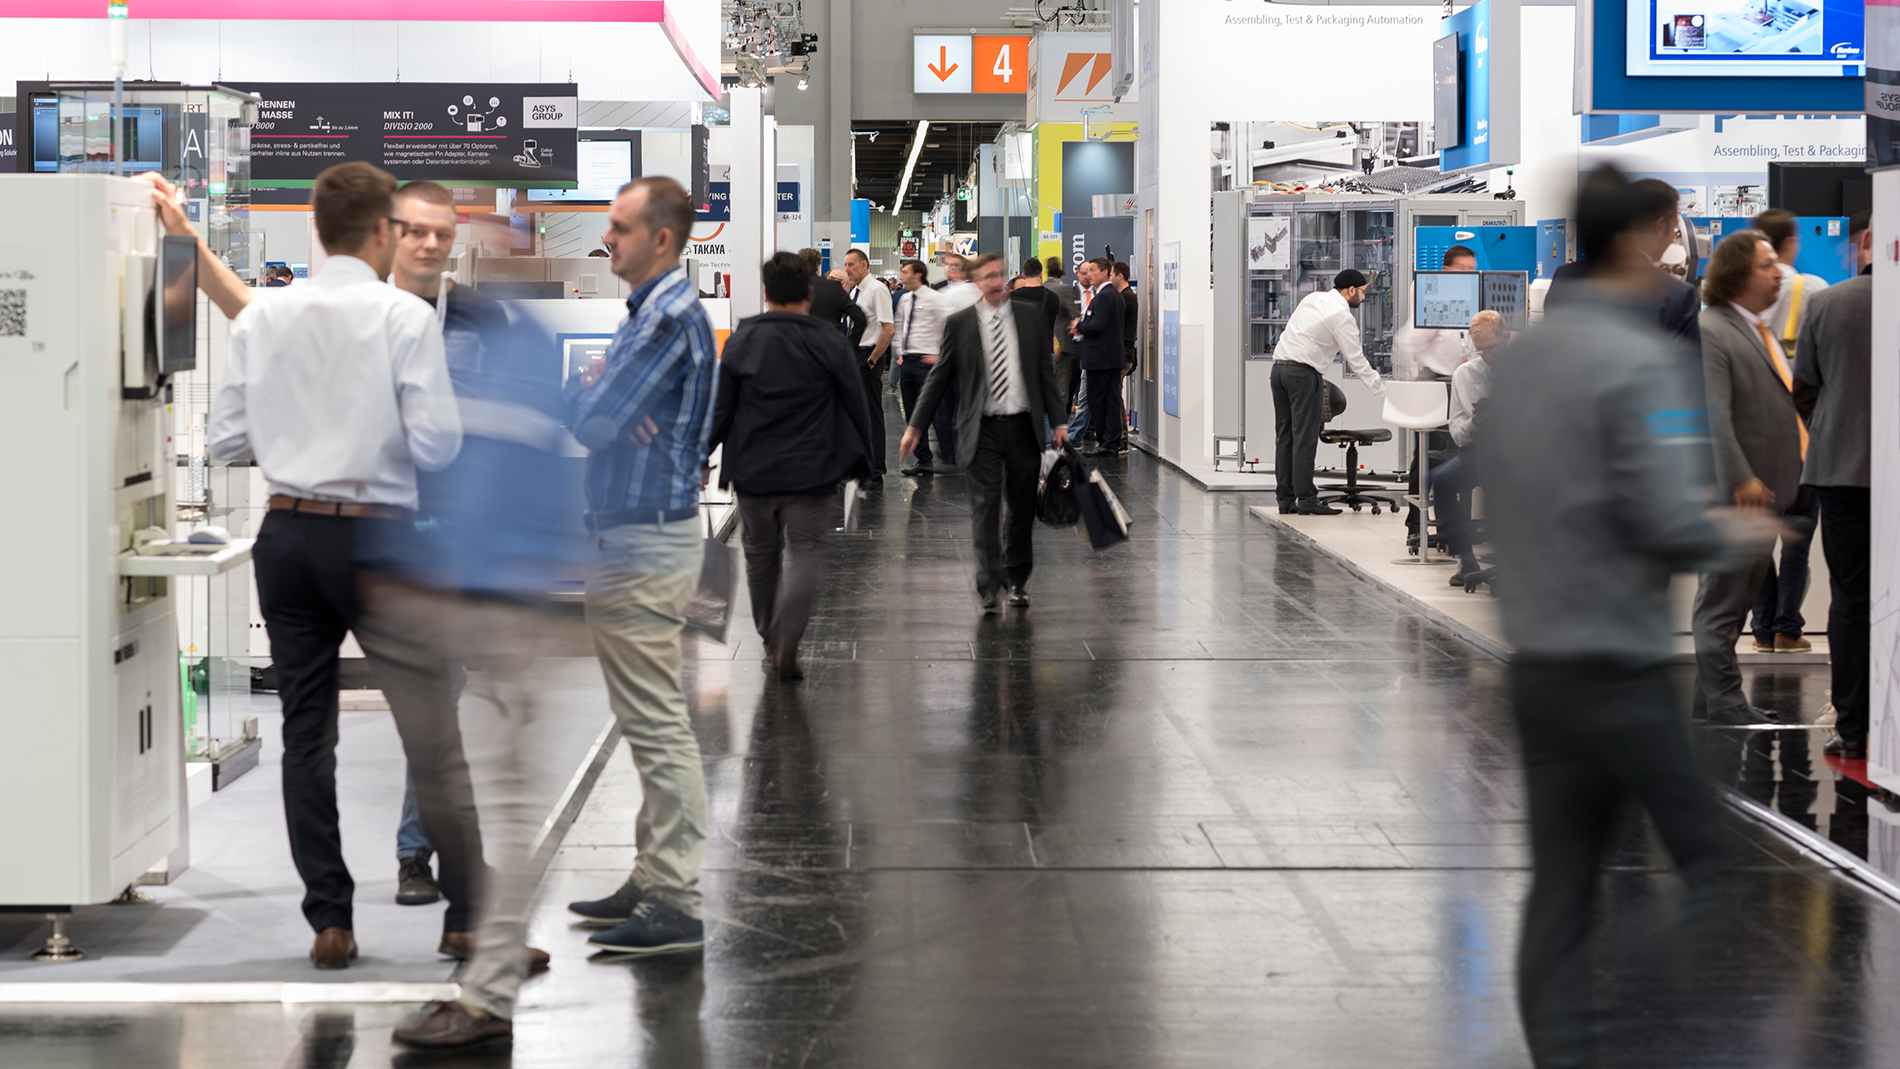 Trade fair atmosphere in hall 4A, including ASYS Automatisierungssysteme GmbH, axiss GmbH and more